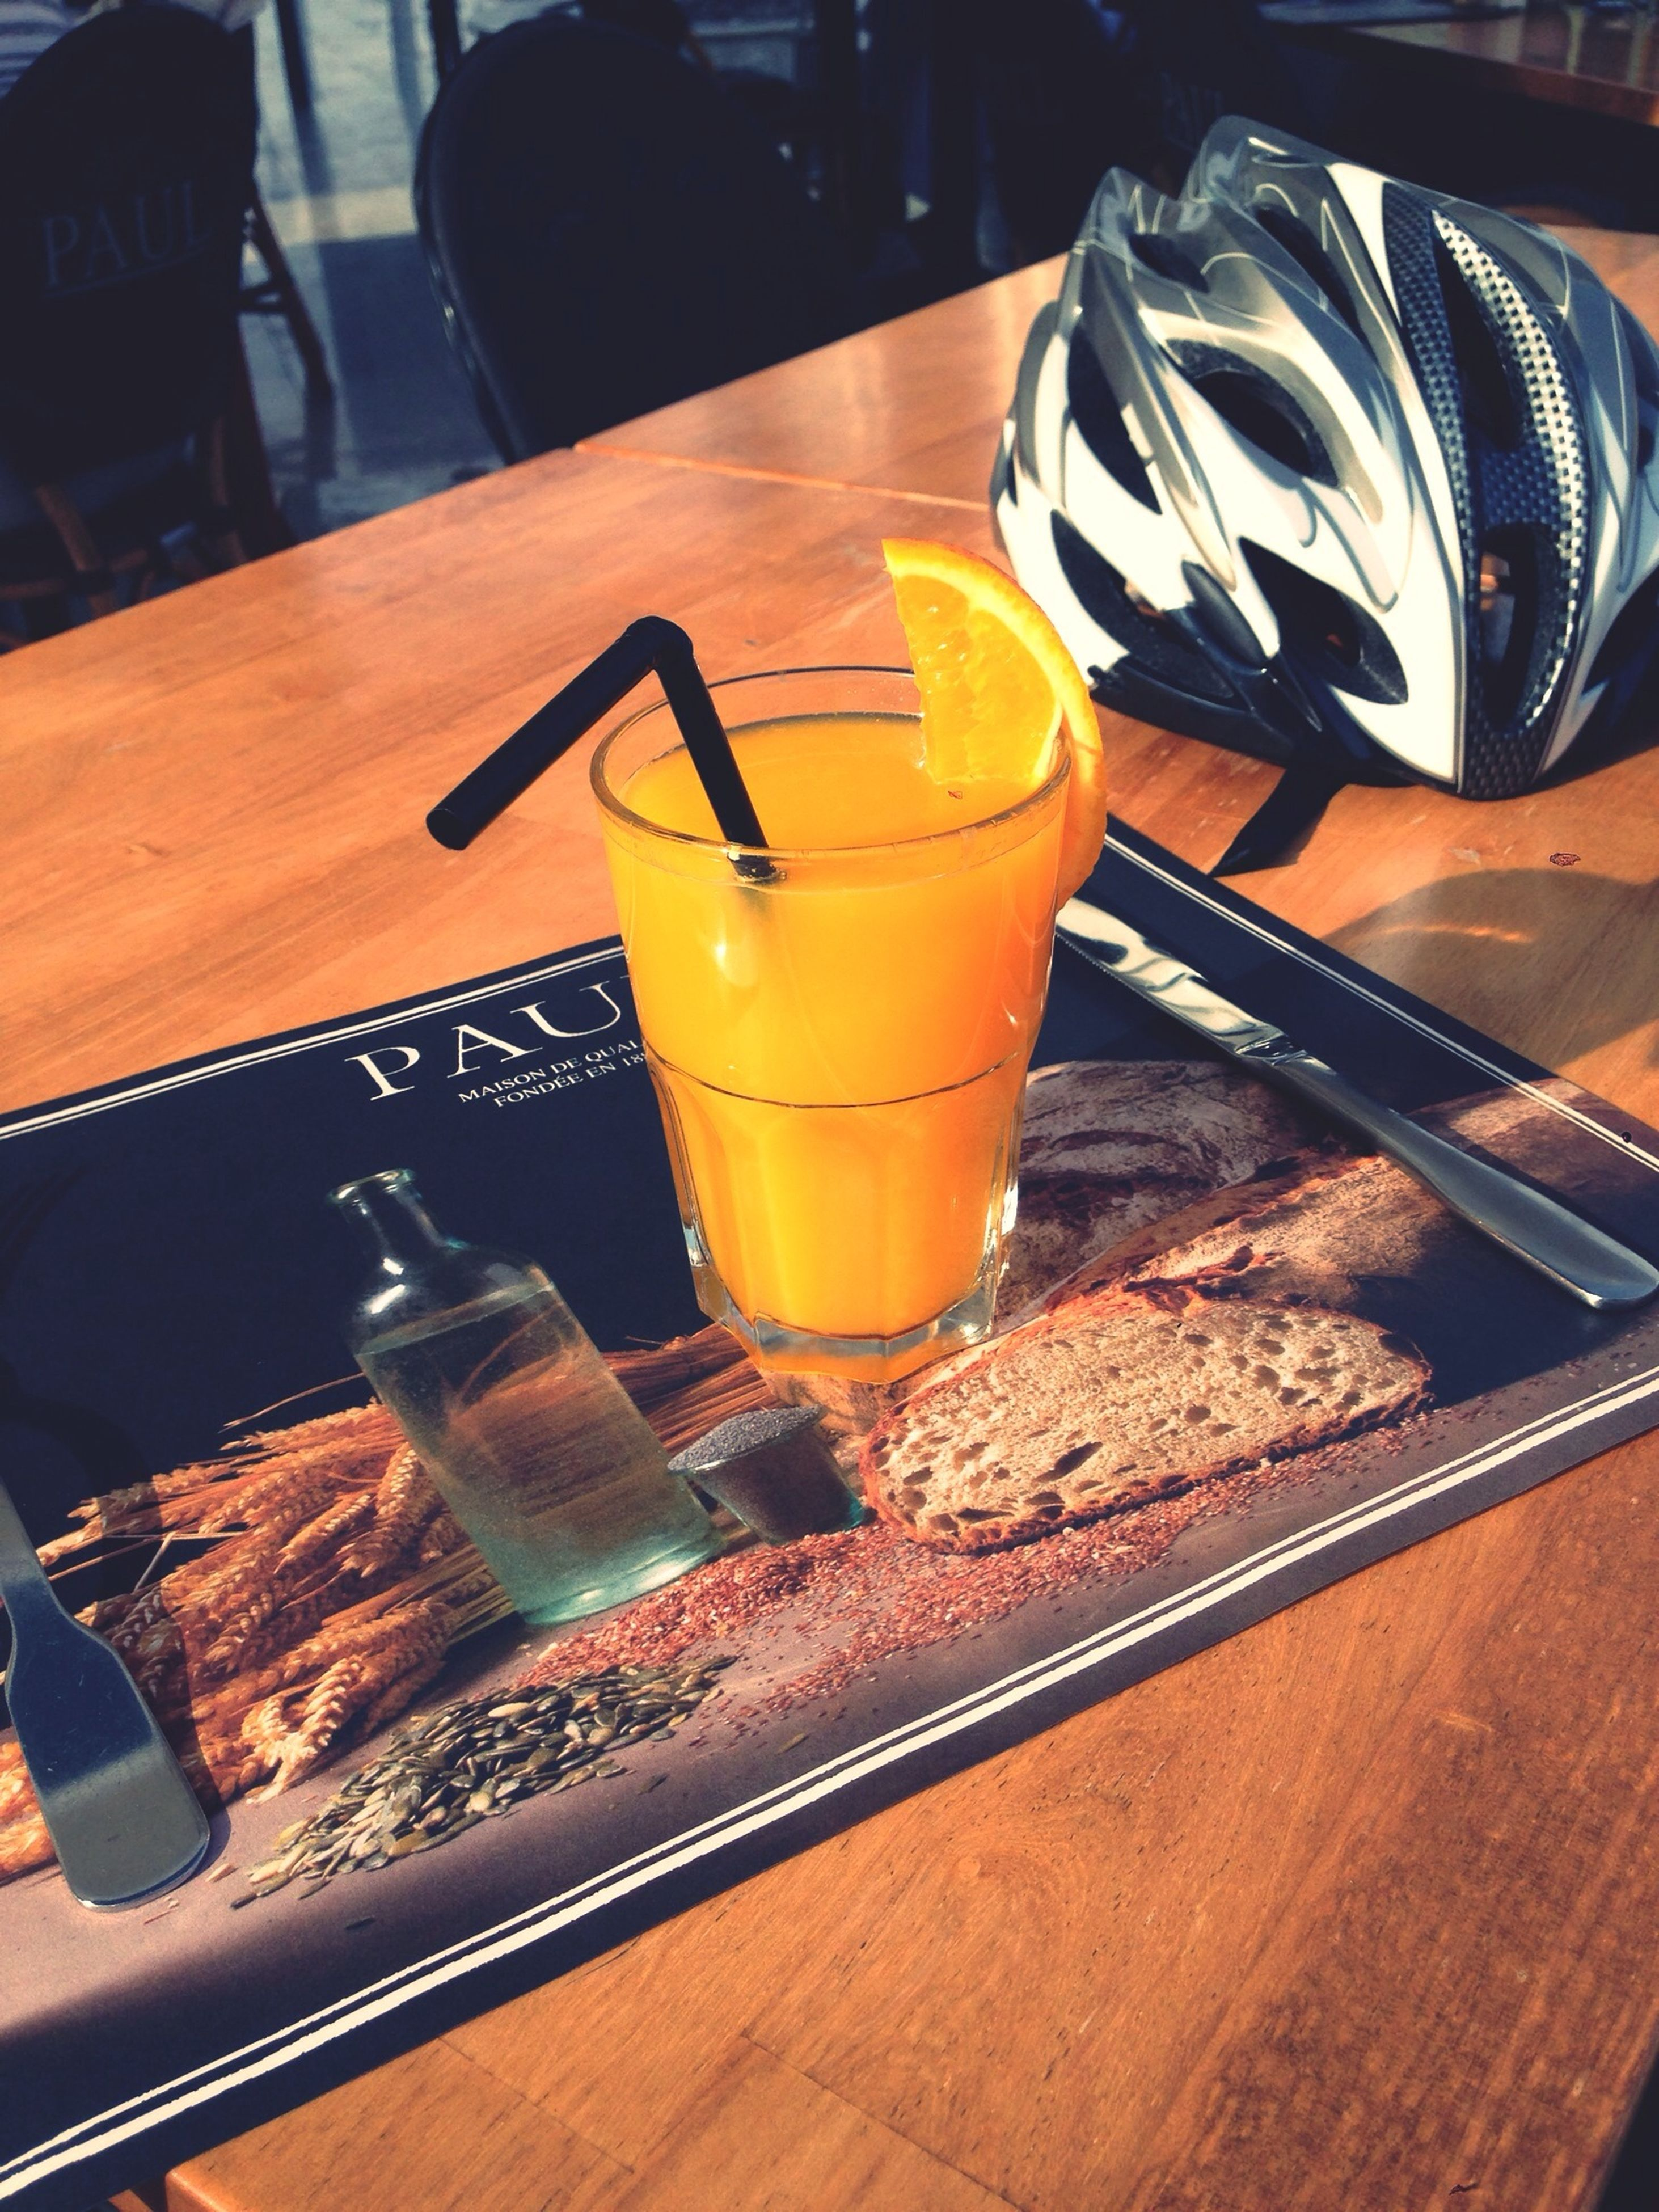 food and drink, indoors, table, drink, freshness, still life, refreshment, close-up, drinking glass, yellow, high angle view, wood - material, glass - material, no people, restaurant, focus on foreground, orange color, drinking straw, alcohol, food